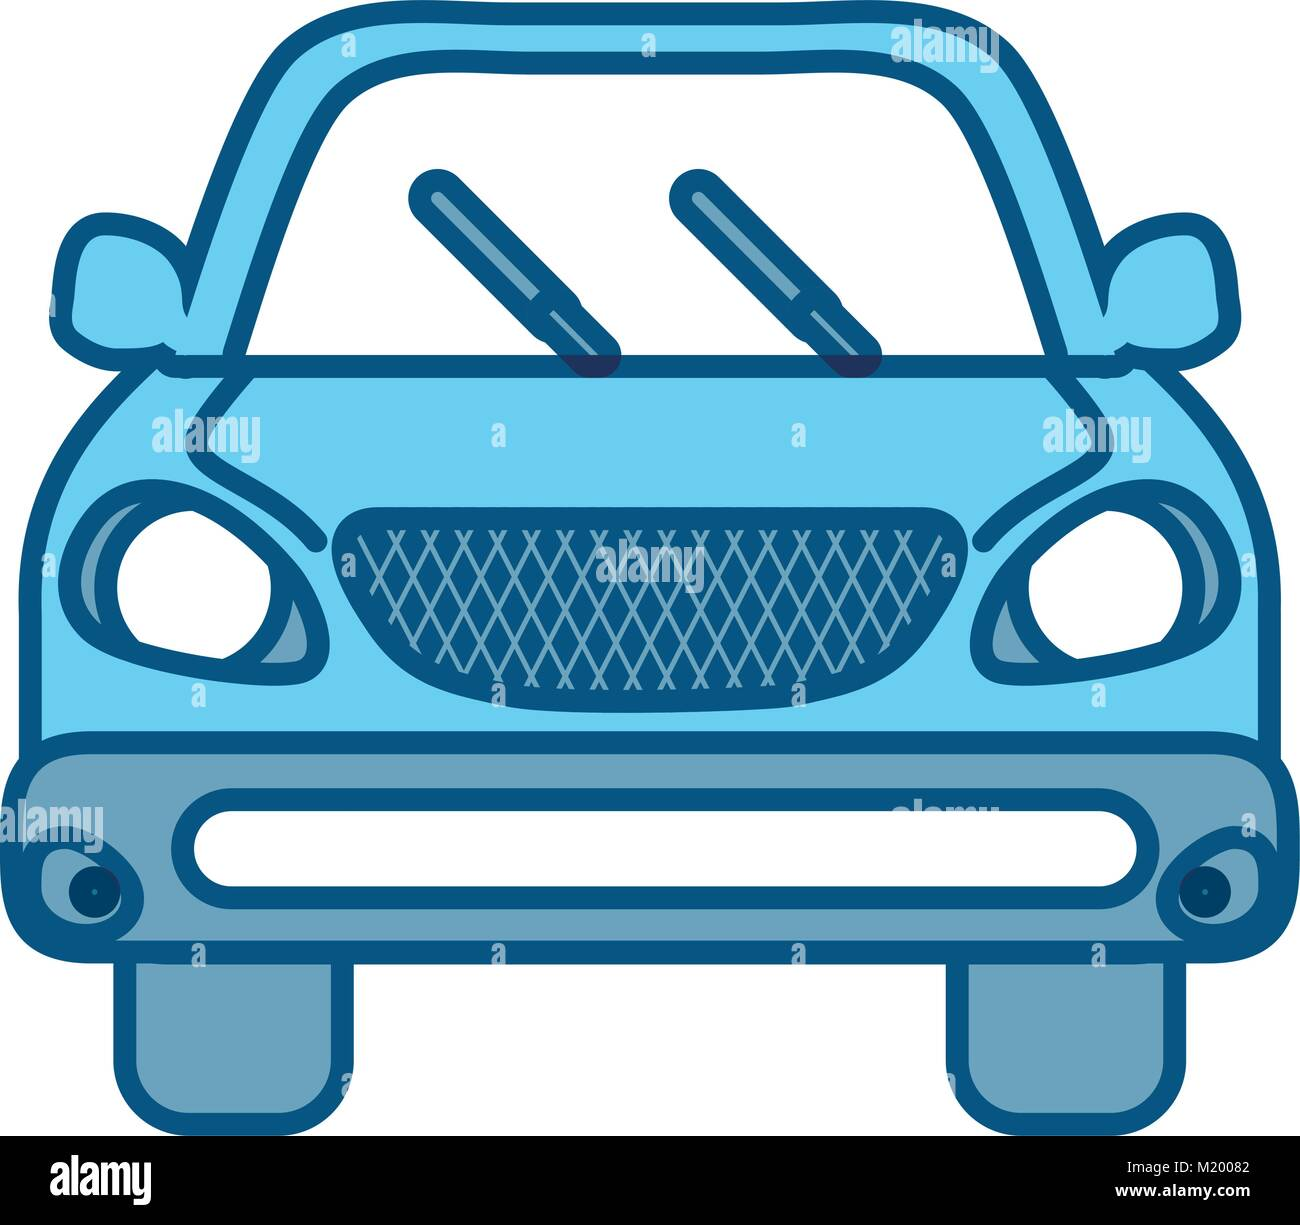 car icon image - Stock Image